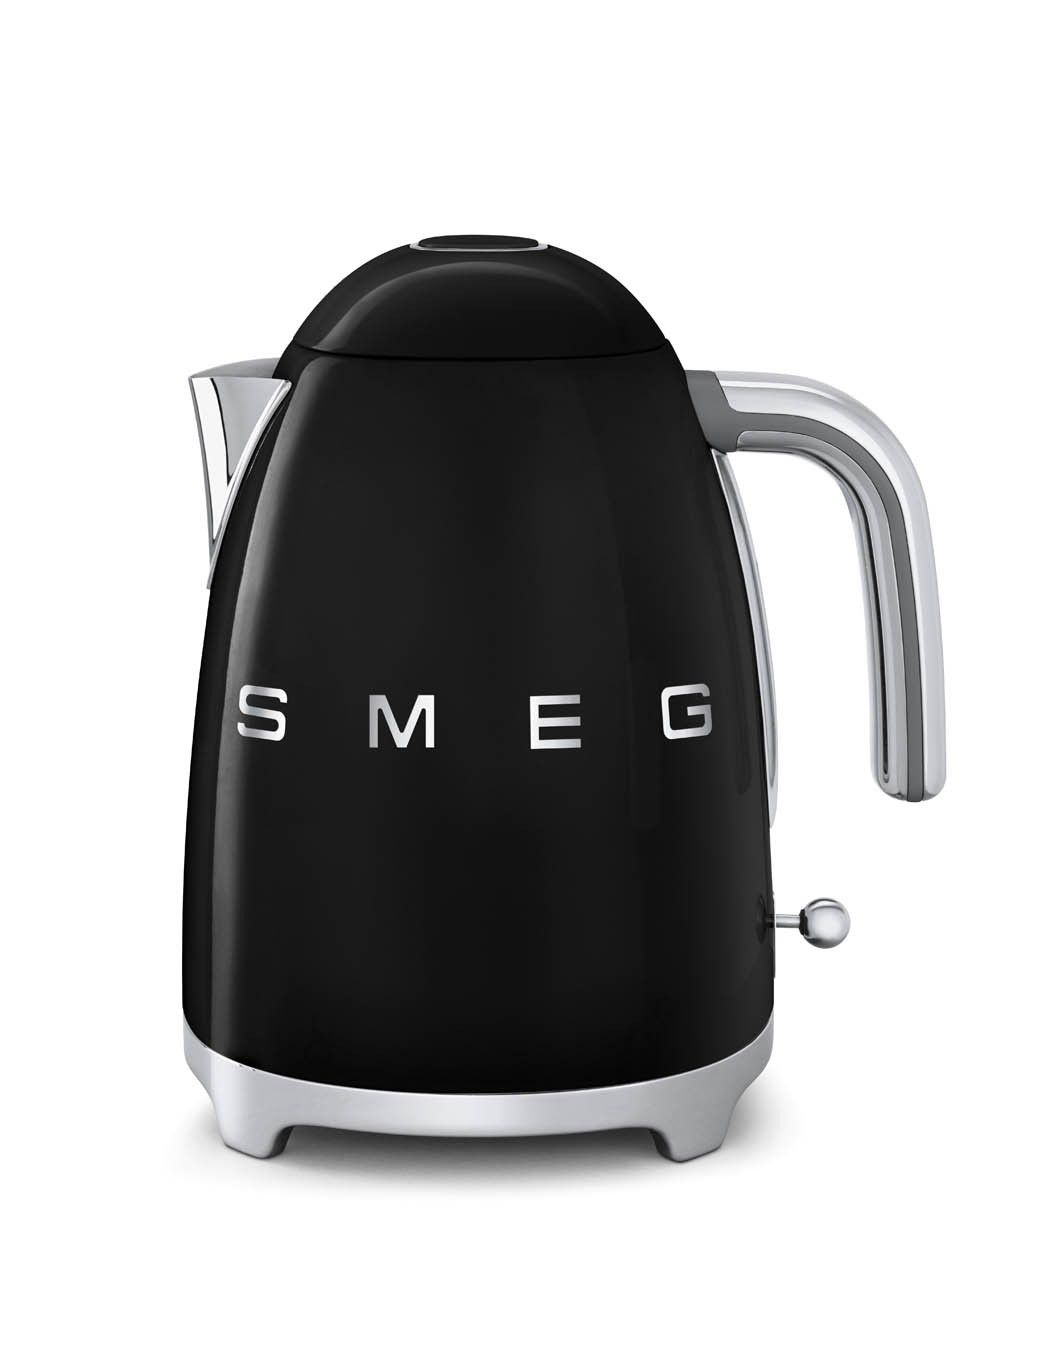 Smeg 50\'s Retro Style Black Kettle | Retro Appliances | Pinterest